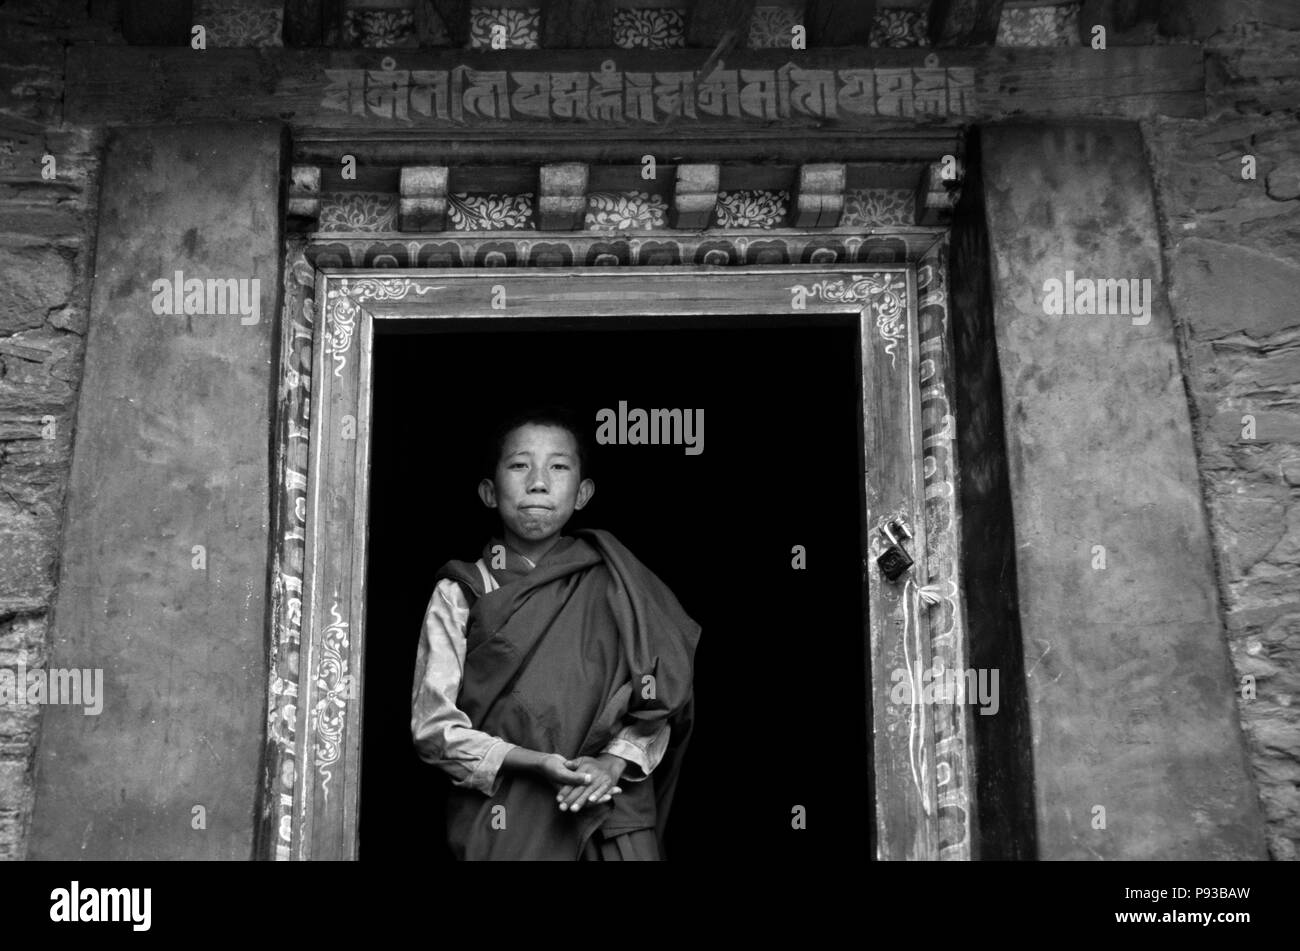 BUDDHIST MONK at TRANDRUK TEMPLE  which was founded by KING SONGTSEN GAMPO in the 7TH  Century - YARLUNG VALLEY, TIBET - Stock Image